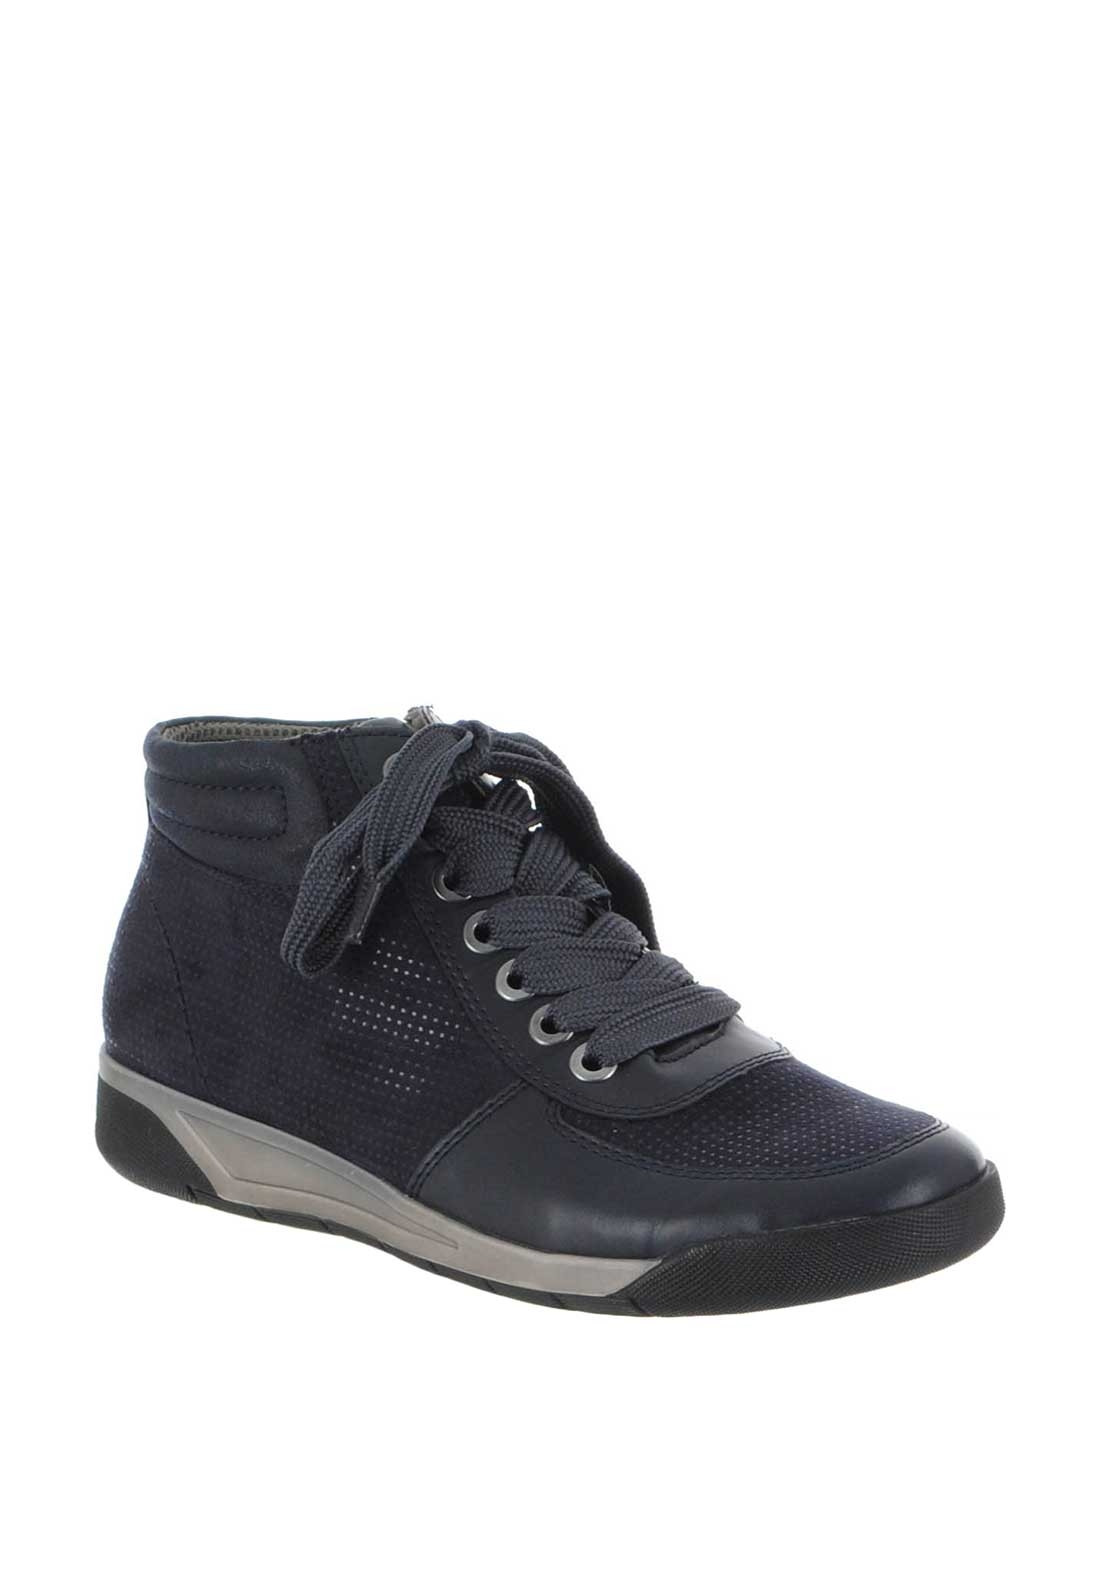 official images limited guantity amazing selection Ara Jenny Shimmer Lace up Boots, Navy